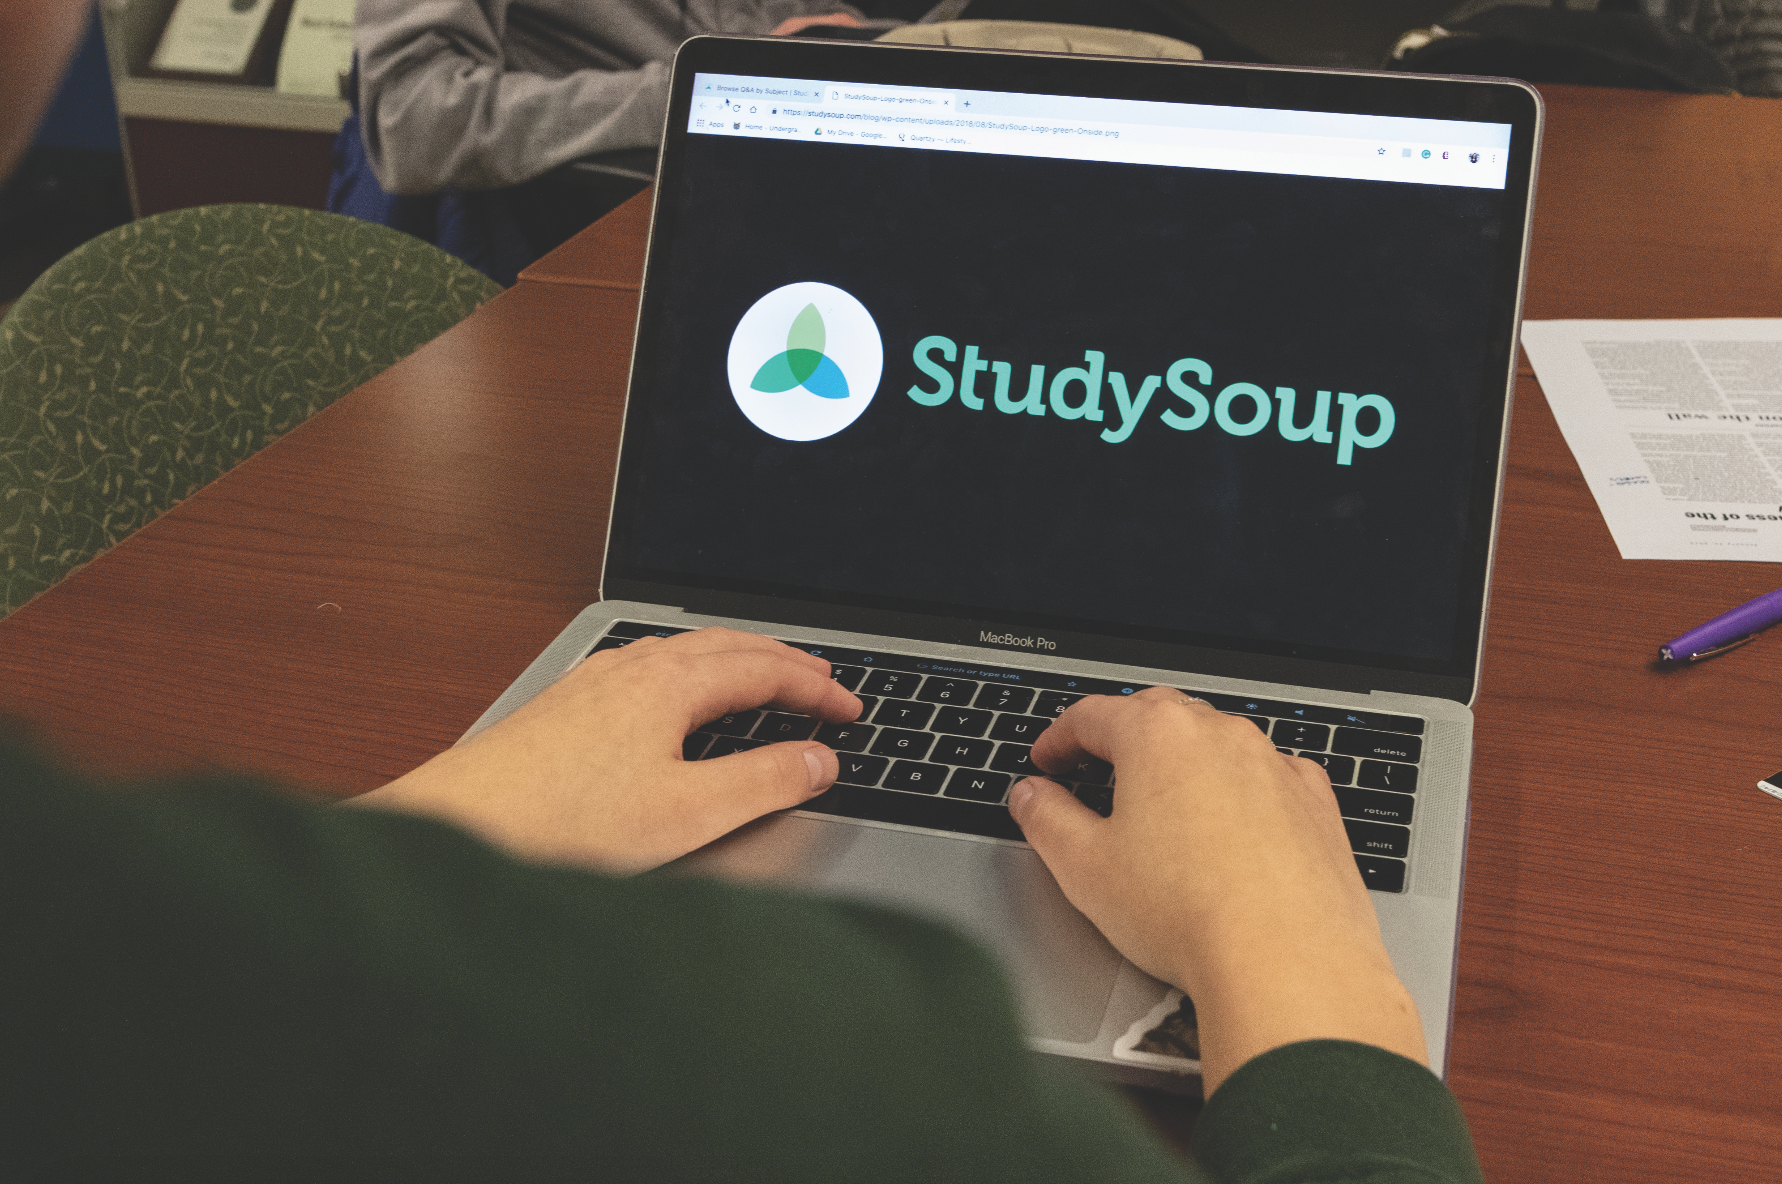 StudySoup or StudyScam?